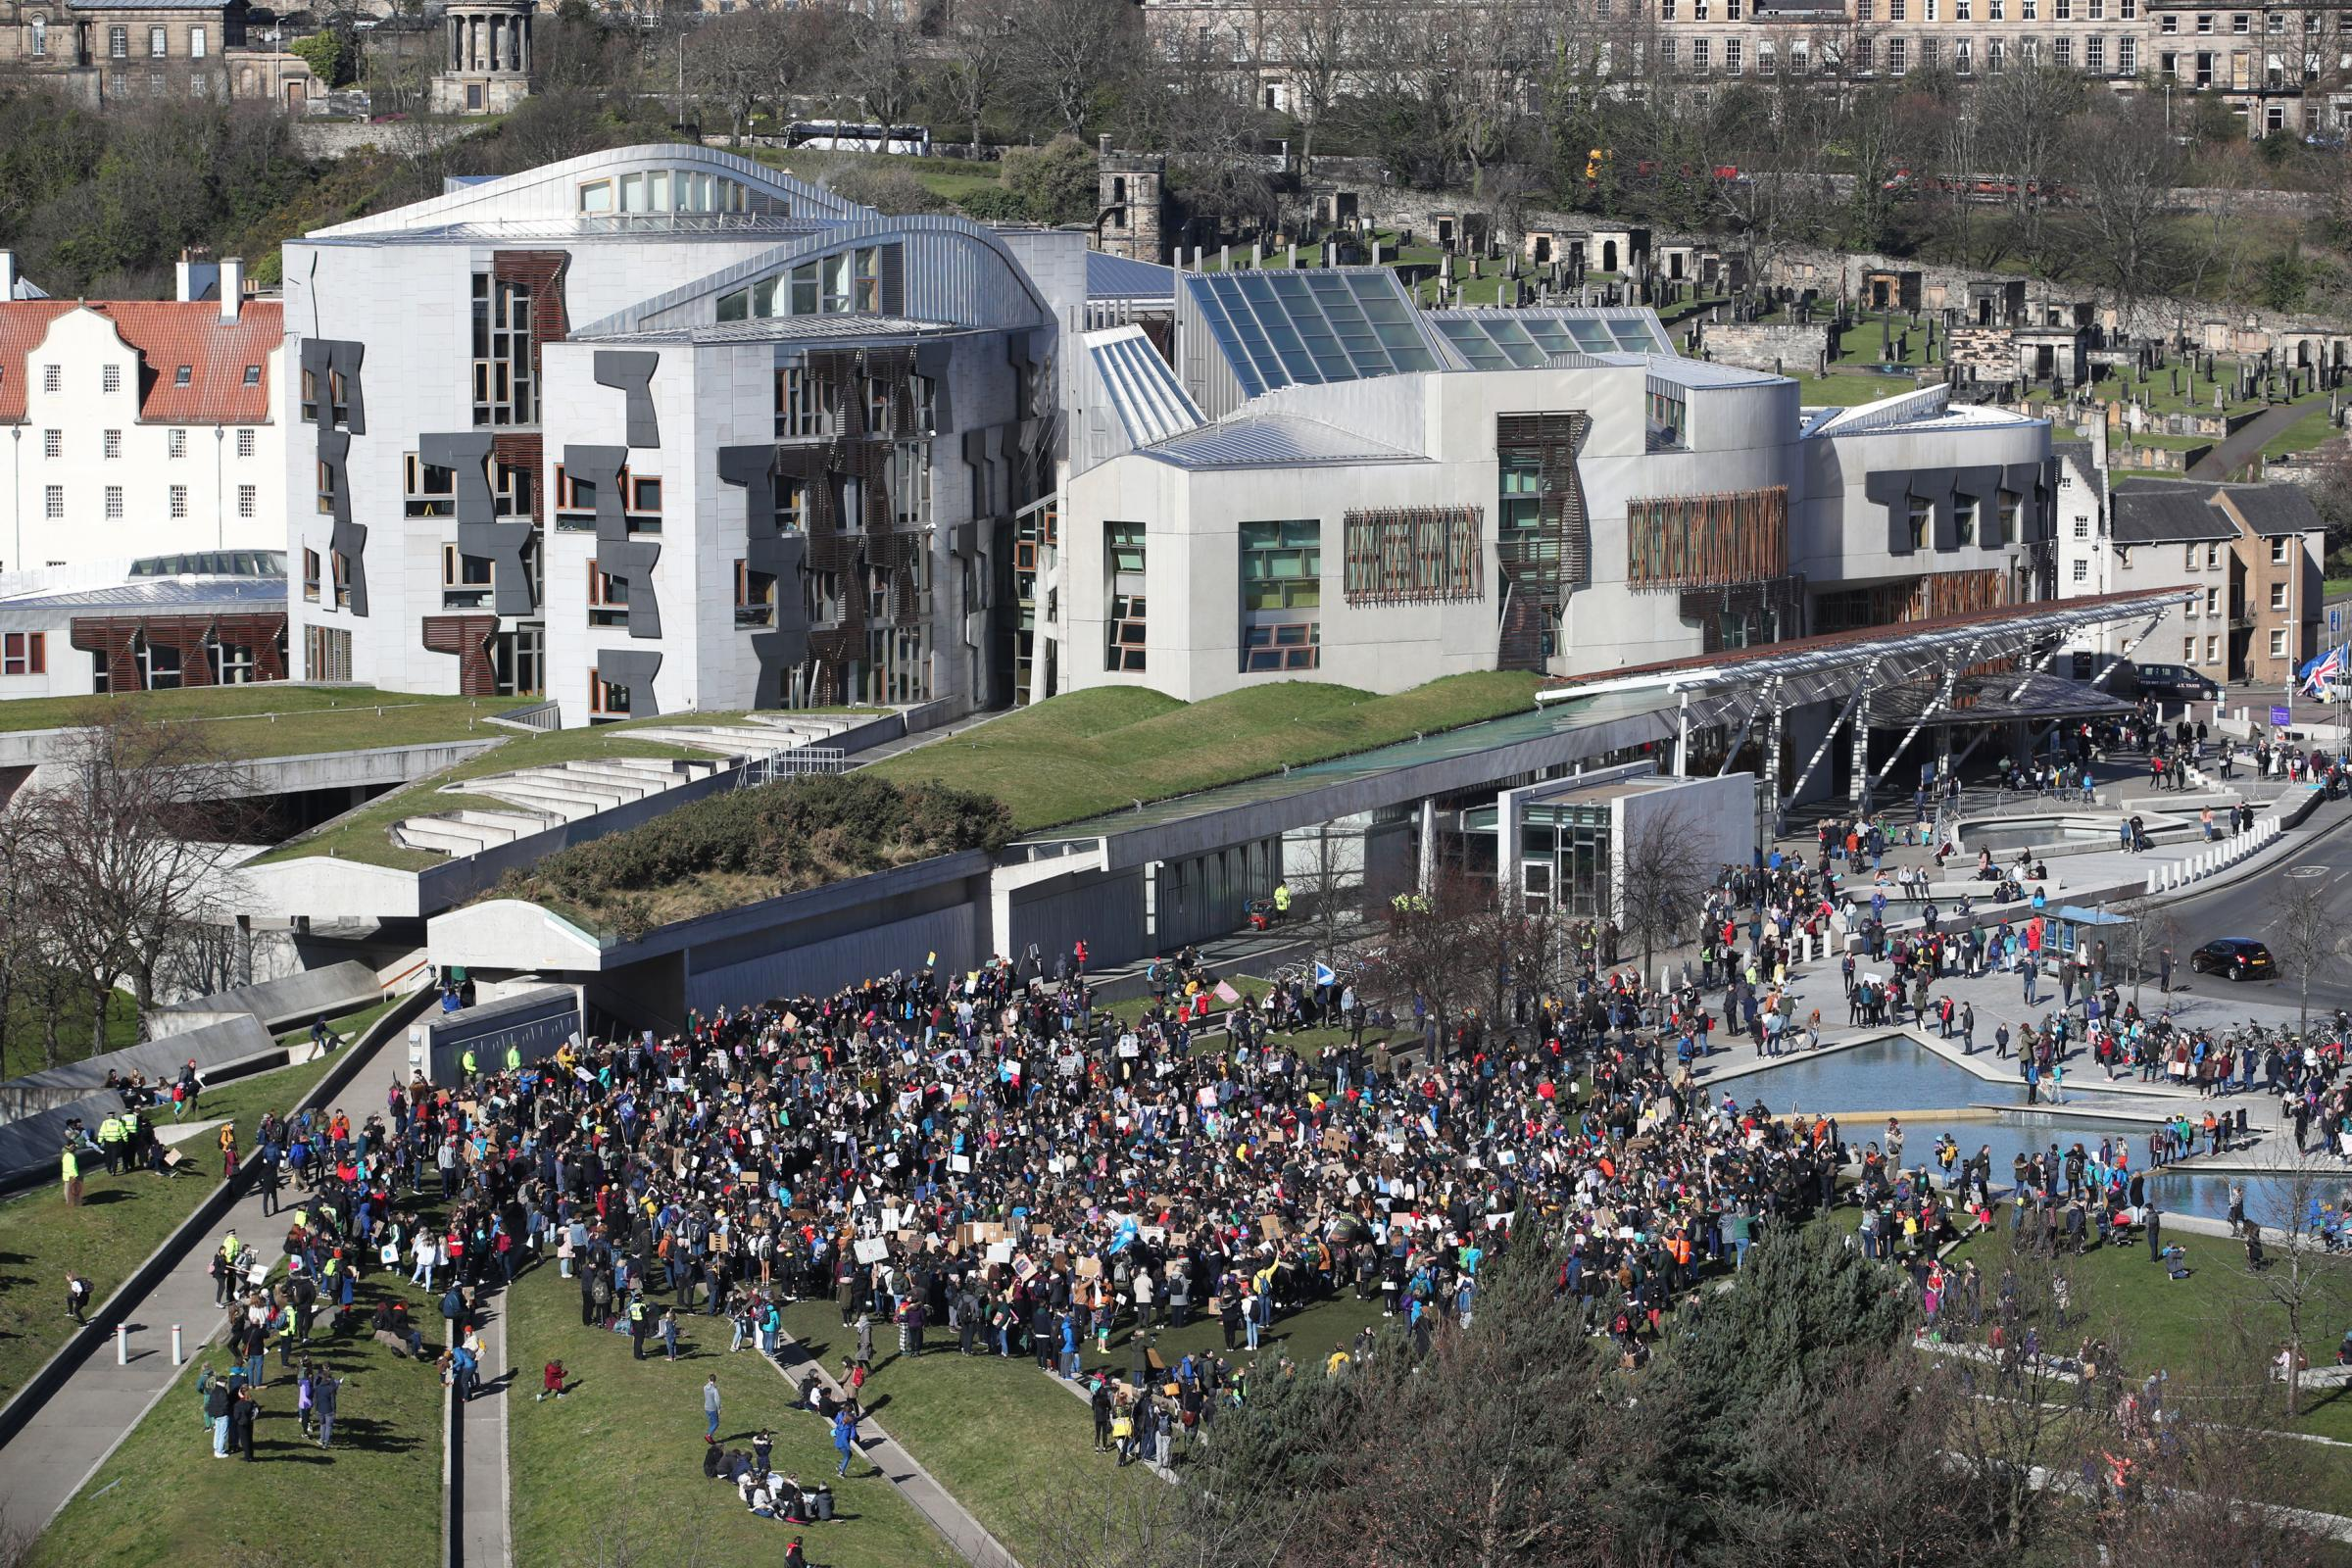 More than 1,000 school pupils descend on Holyrood for climate protest